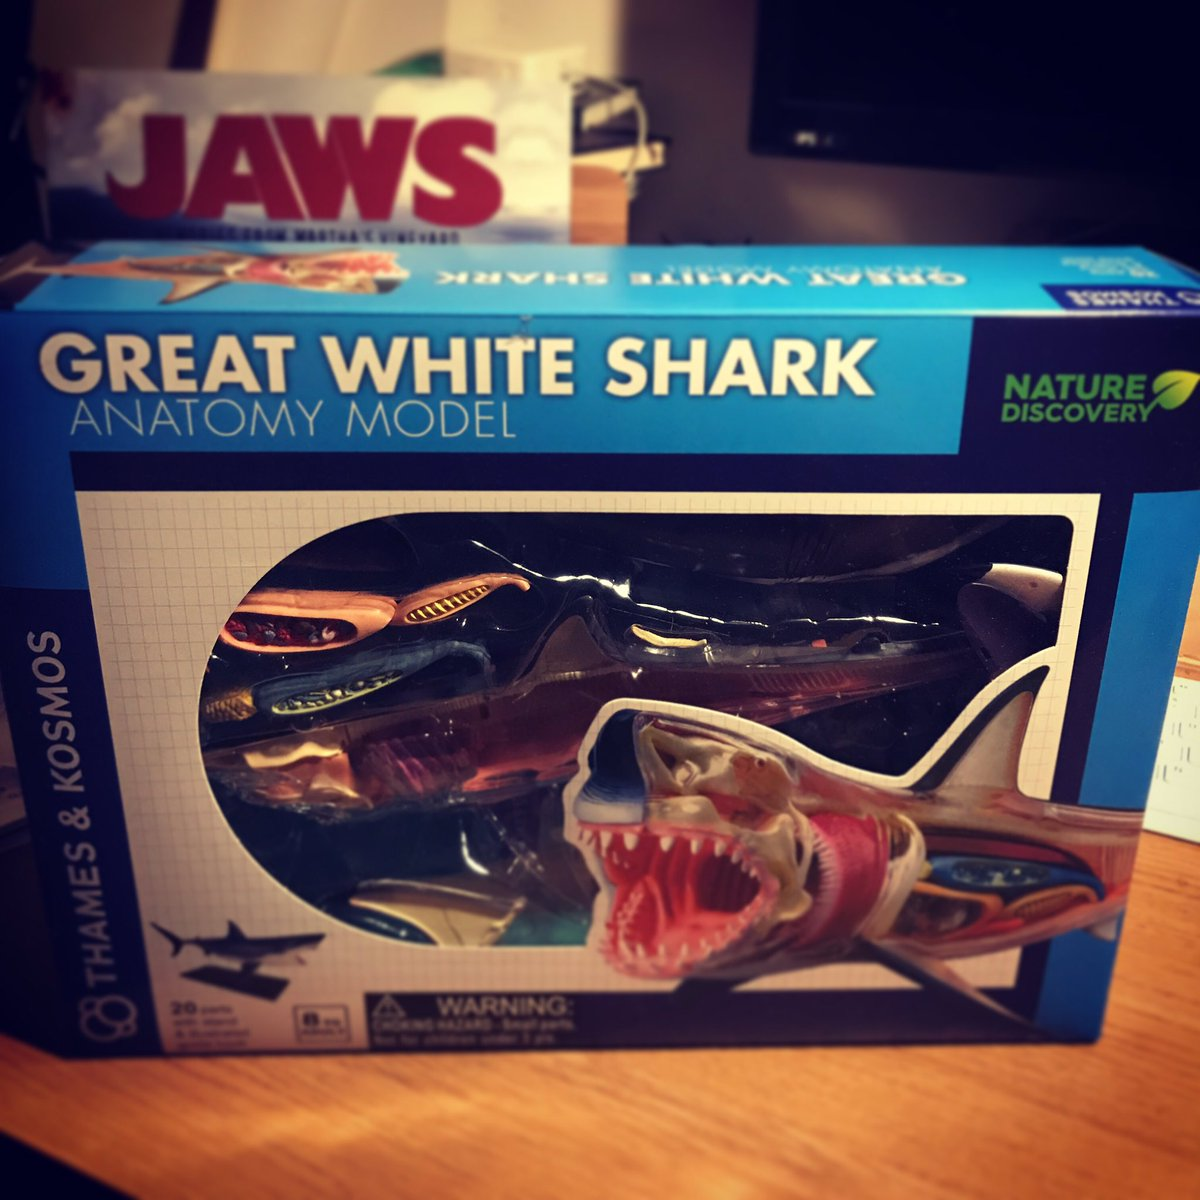 Who else was inspired by JAWS to learn about sharks?  #jaws #learn #study #lovesharks pic.twitter.com/uw1CESoyiS